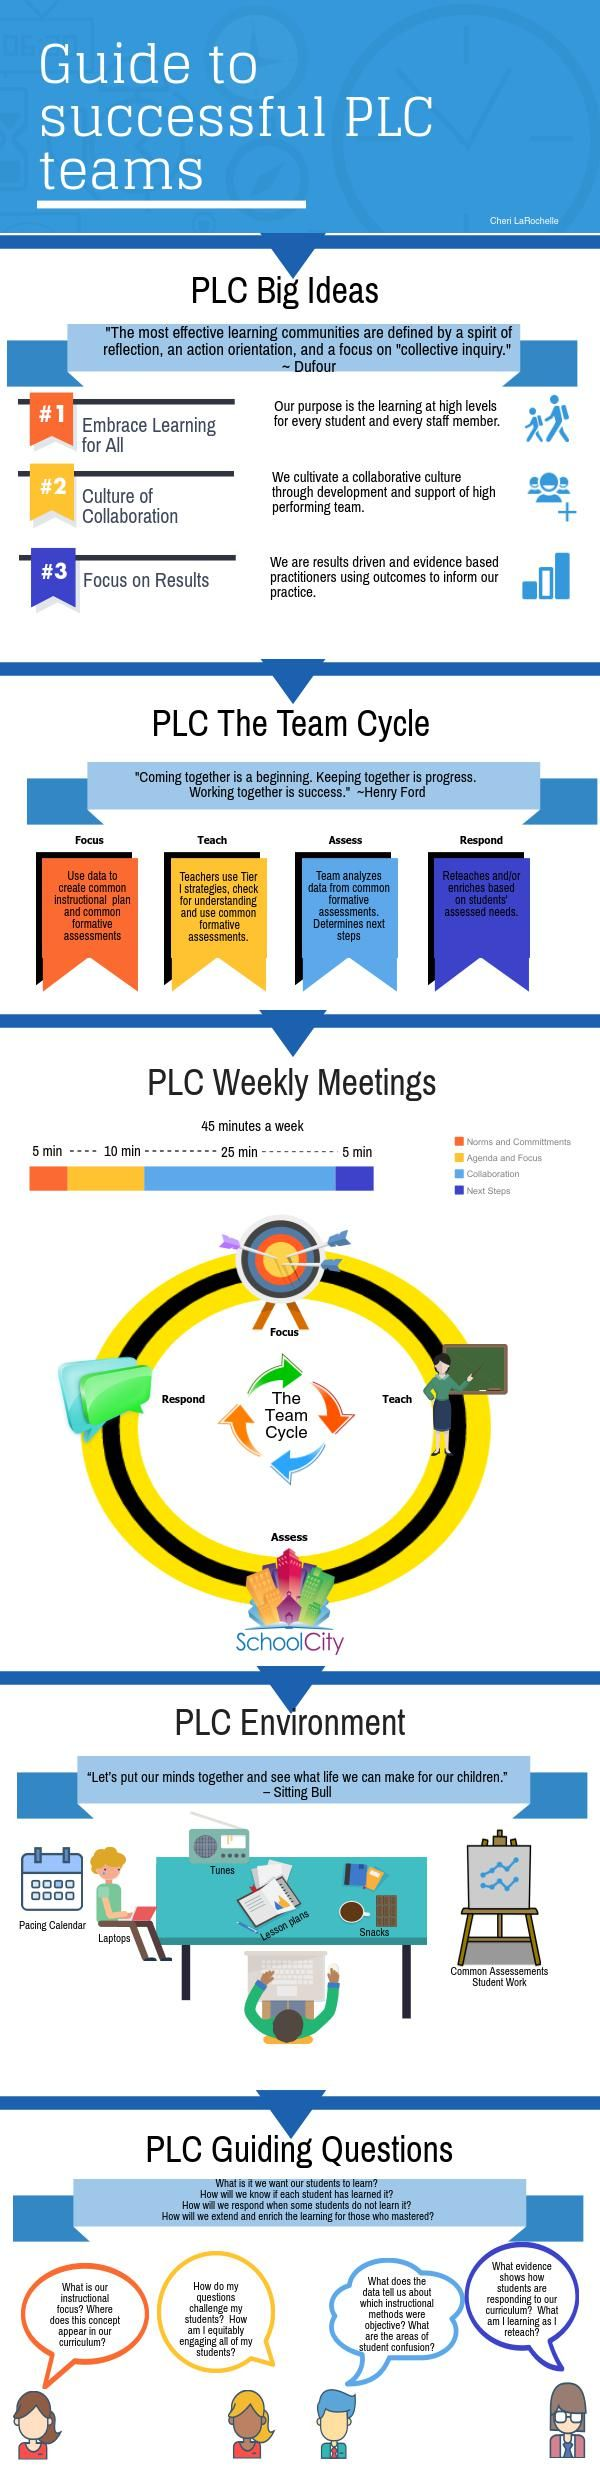 PLC Teams | Piktochart Infographic Editor                                                                                                                                                                                 More                                                                                                                                                                                 More